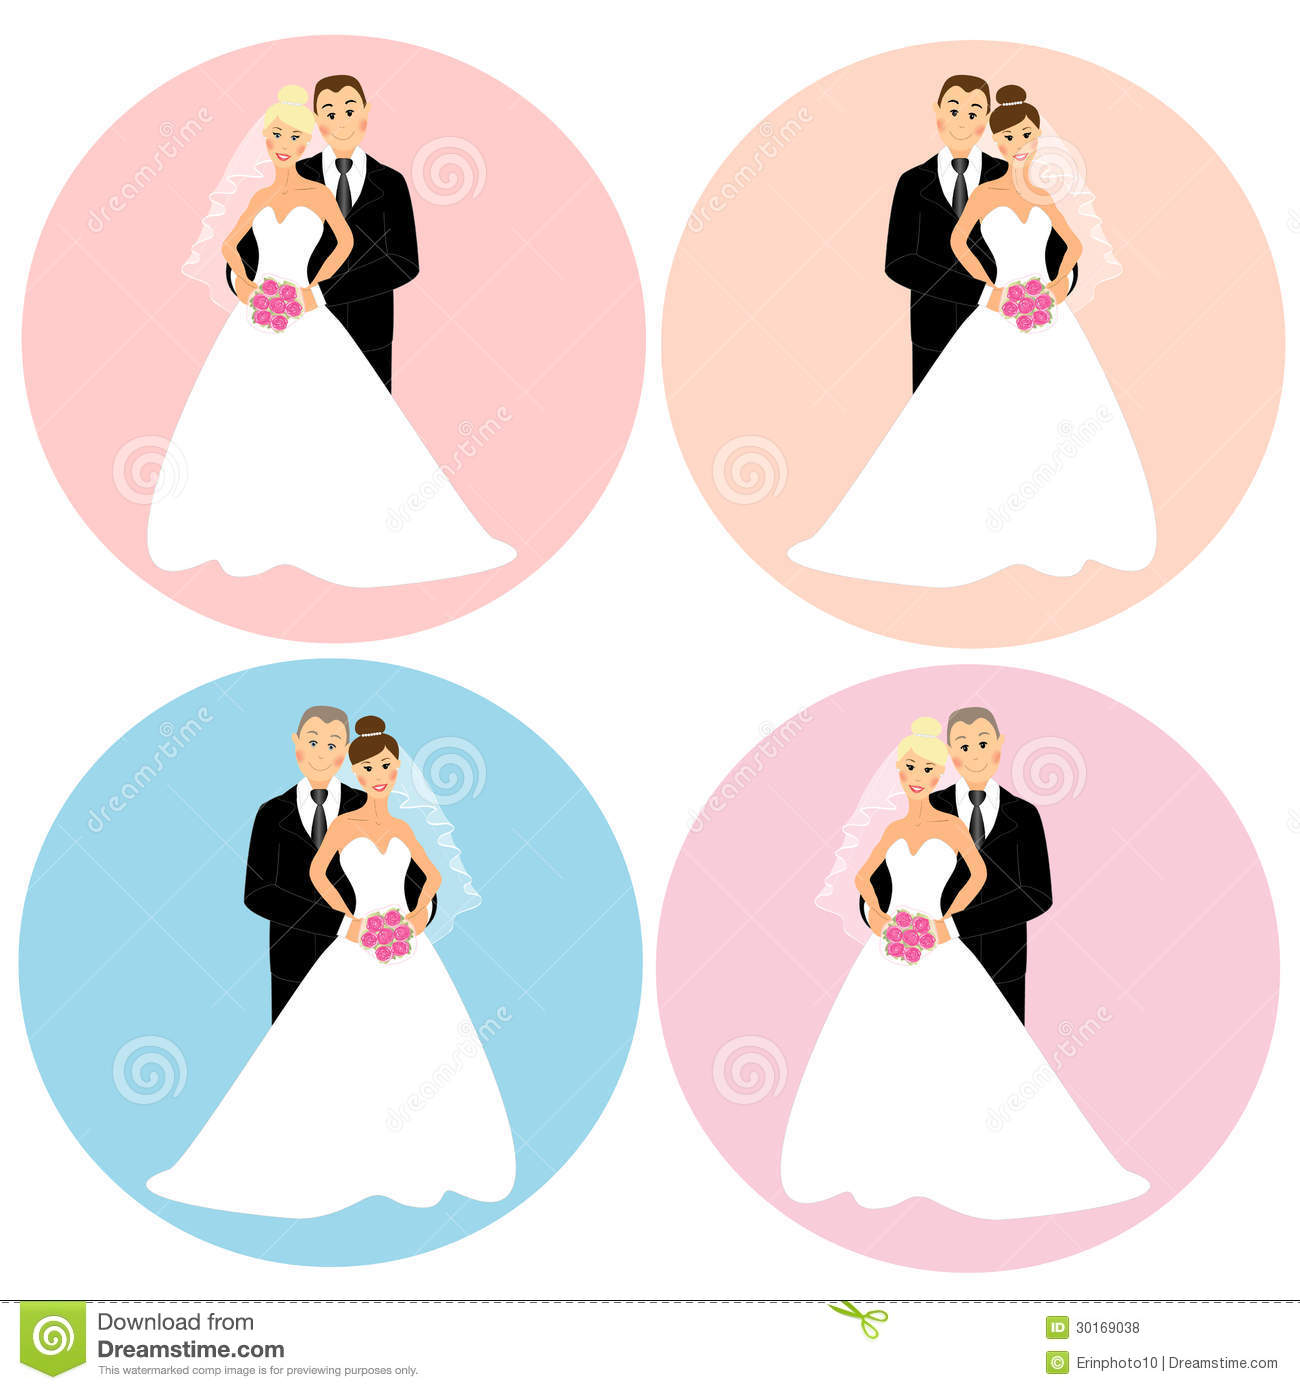 As design elements for wedding invitation decor or cake toppers decor